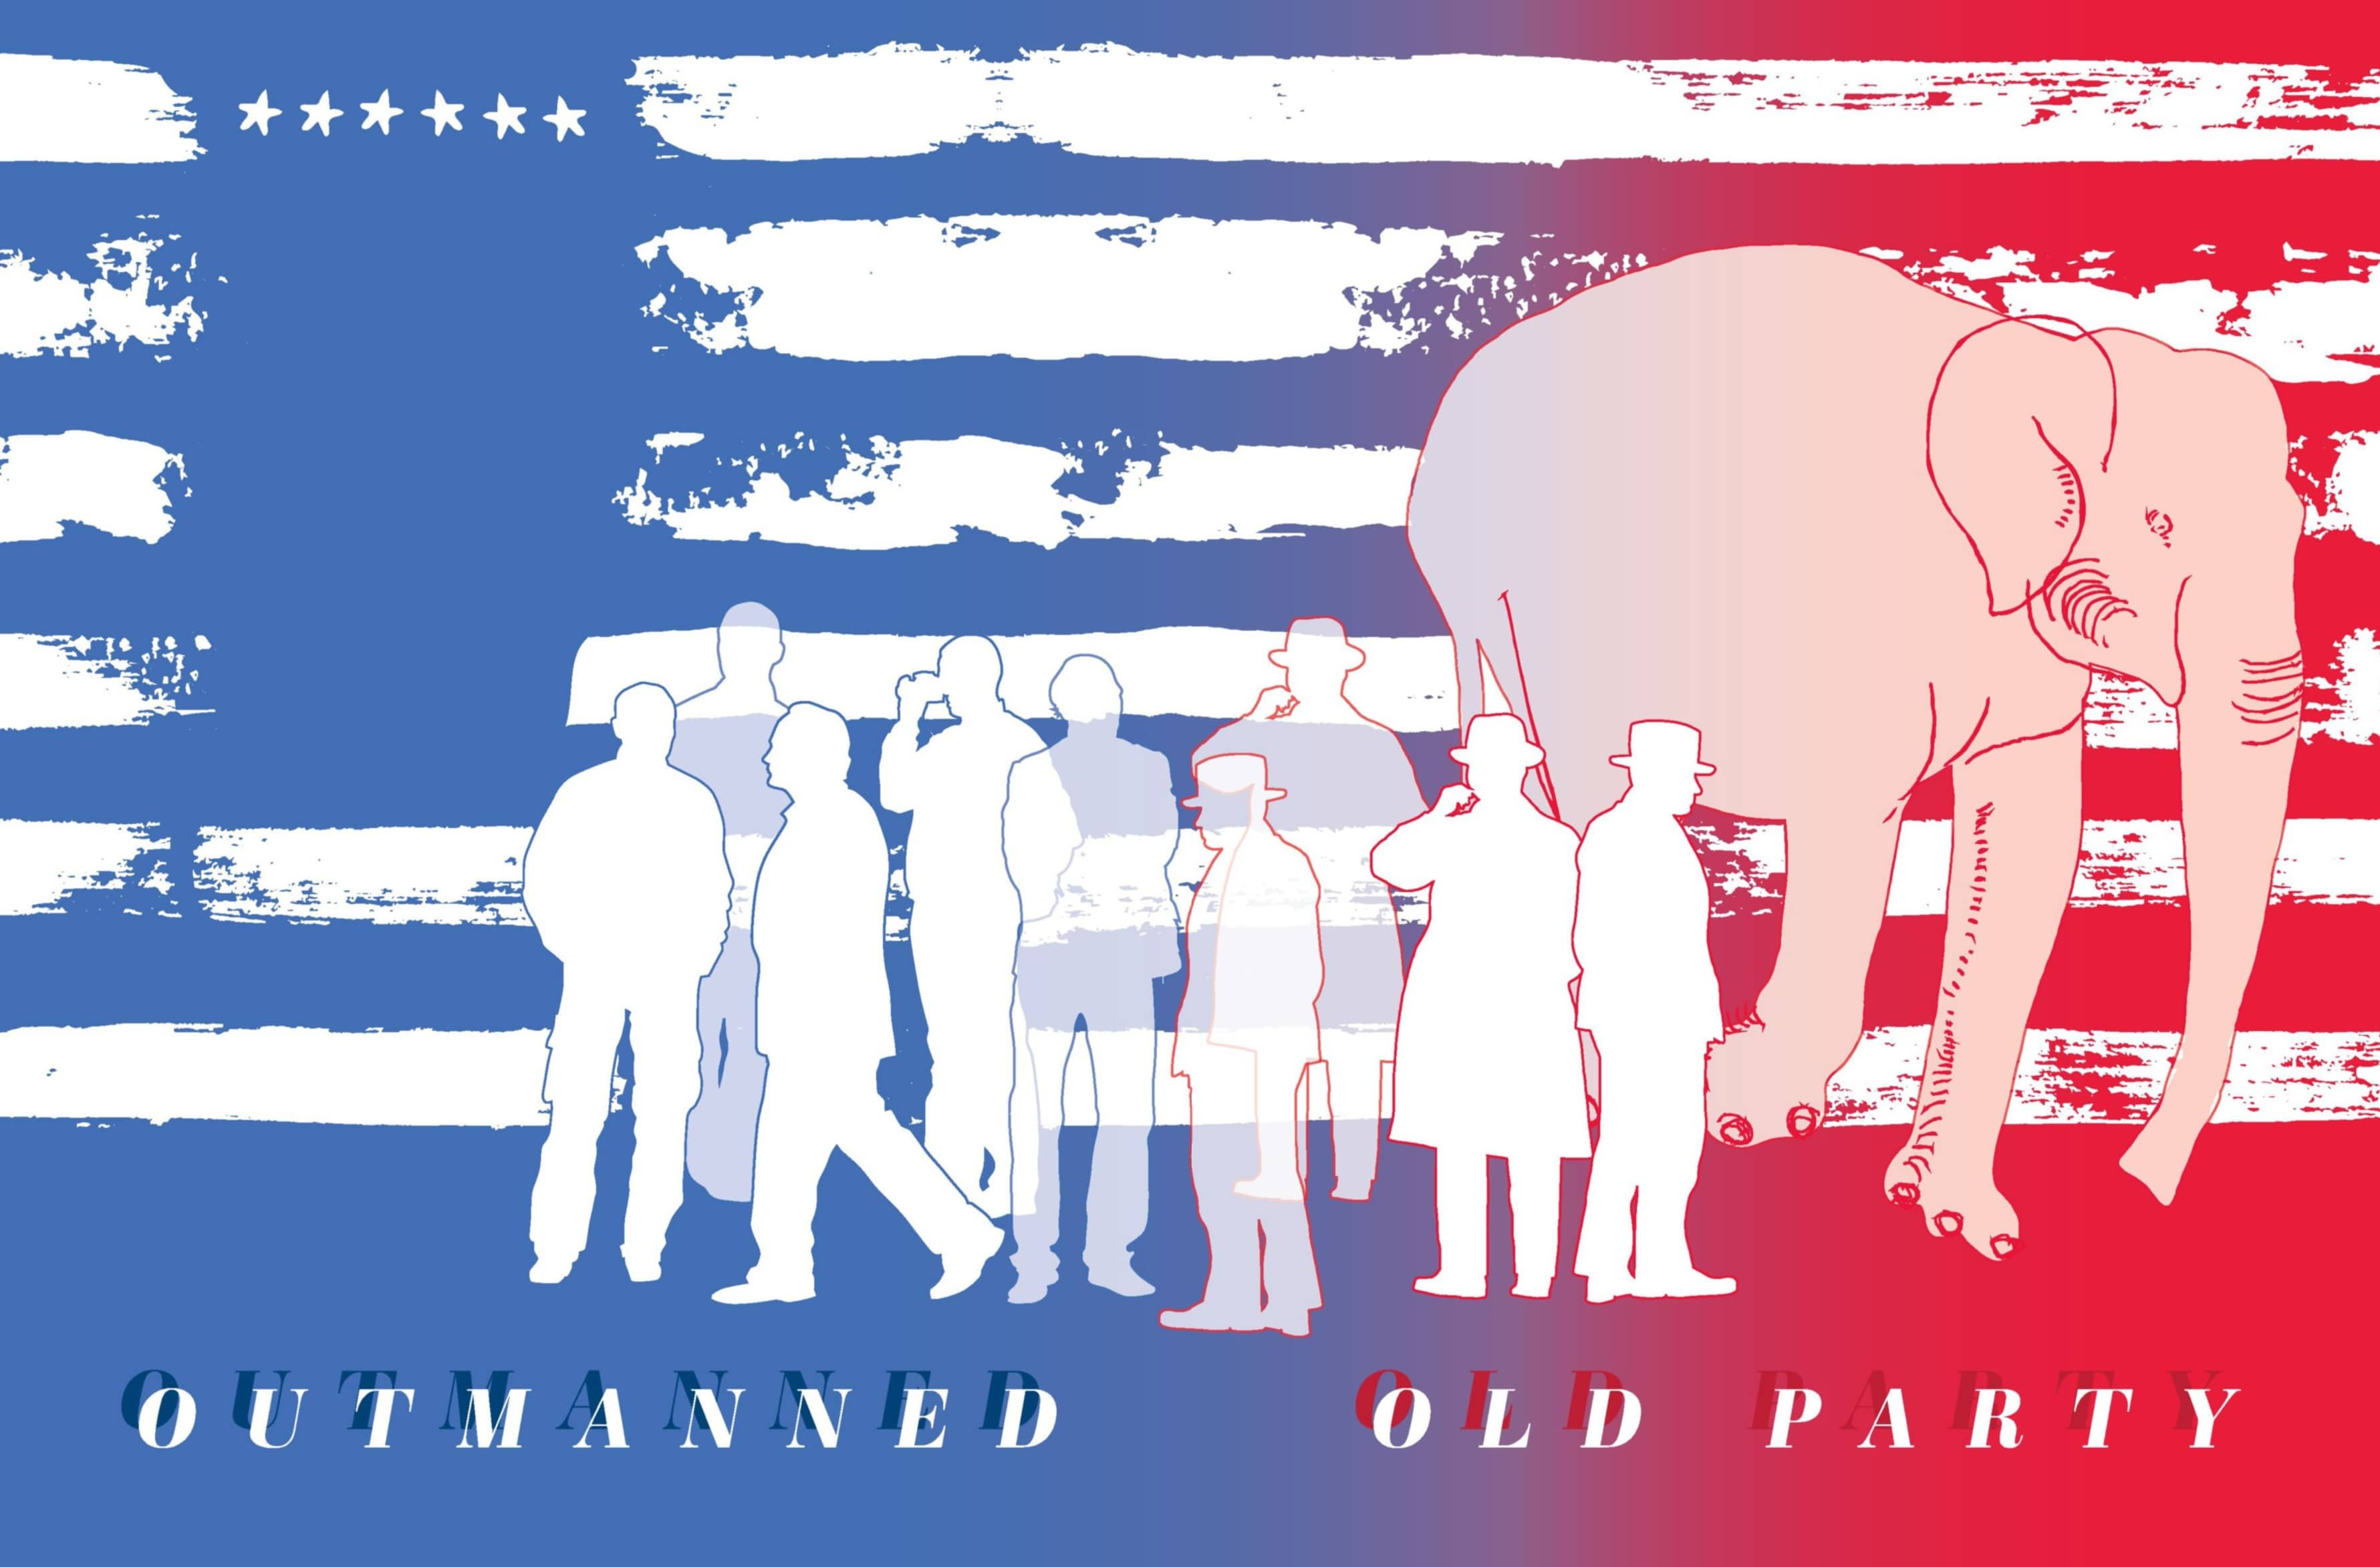 OUTMANNED OLD PARTY